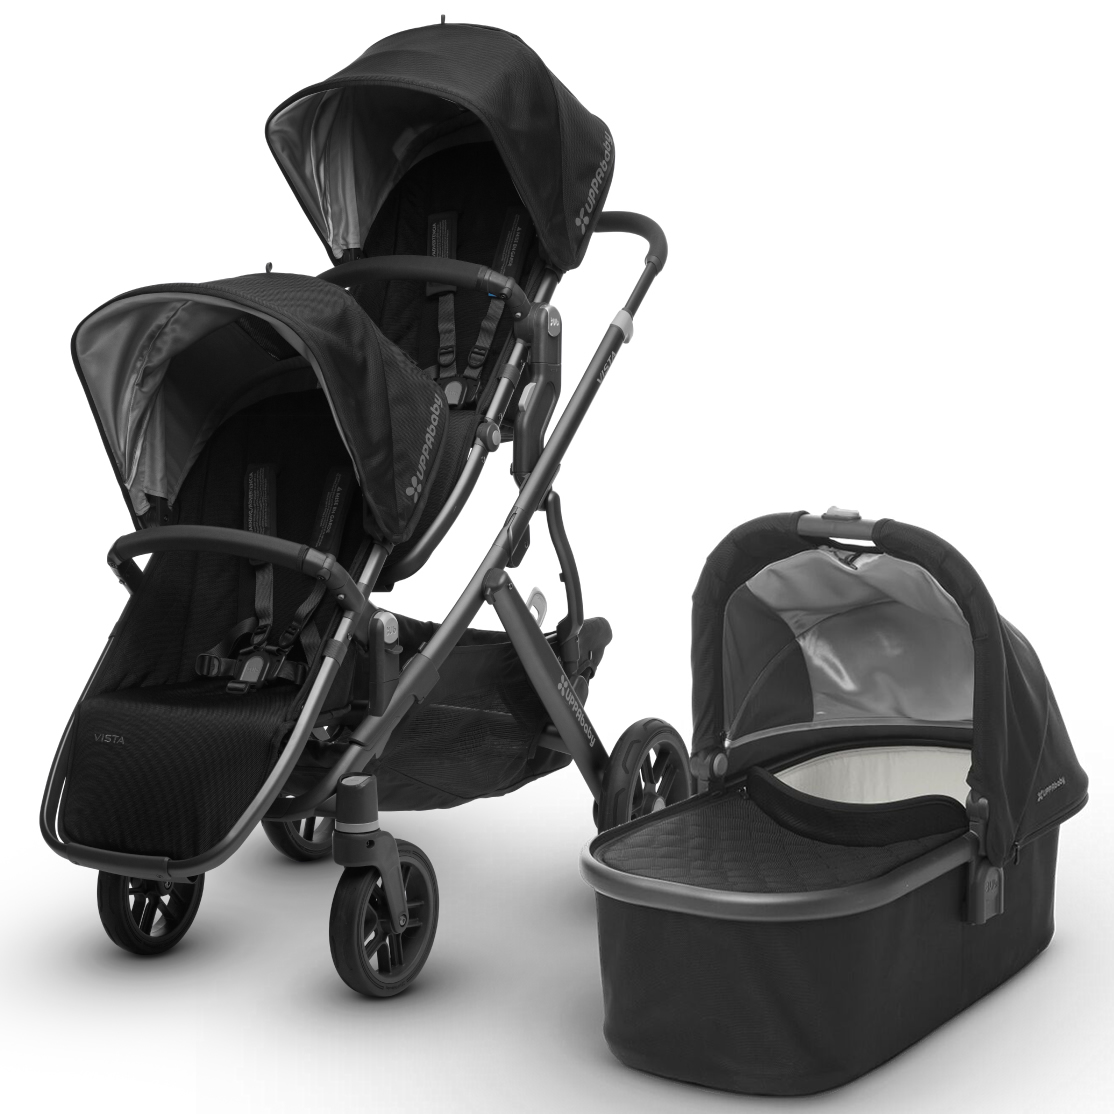 Uppa Baby 2017 Vista Double Stroller - Jake (Black/Carbon)